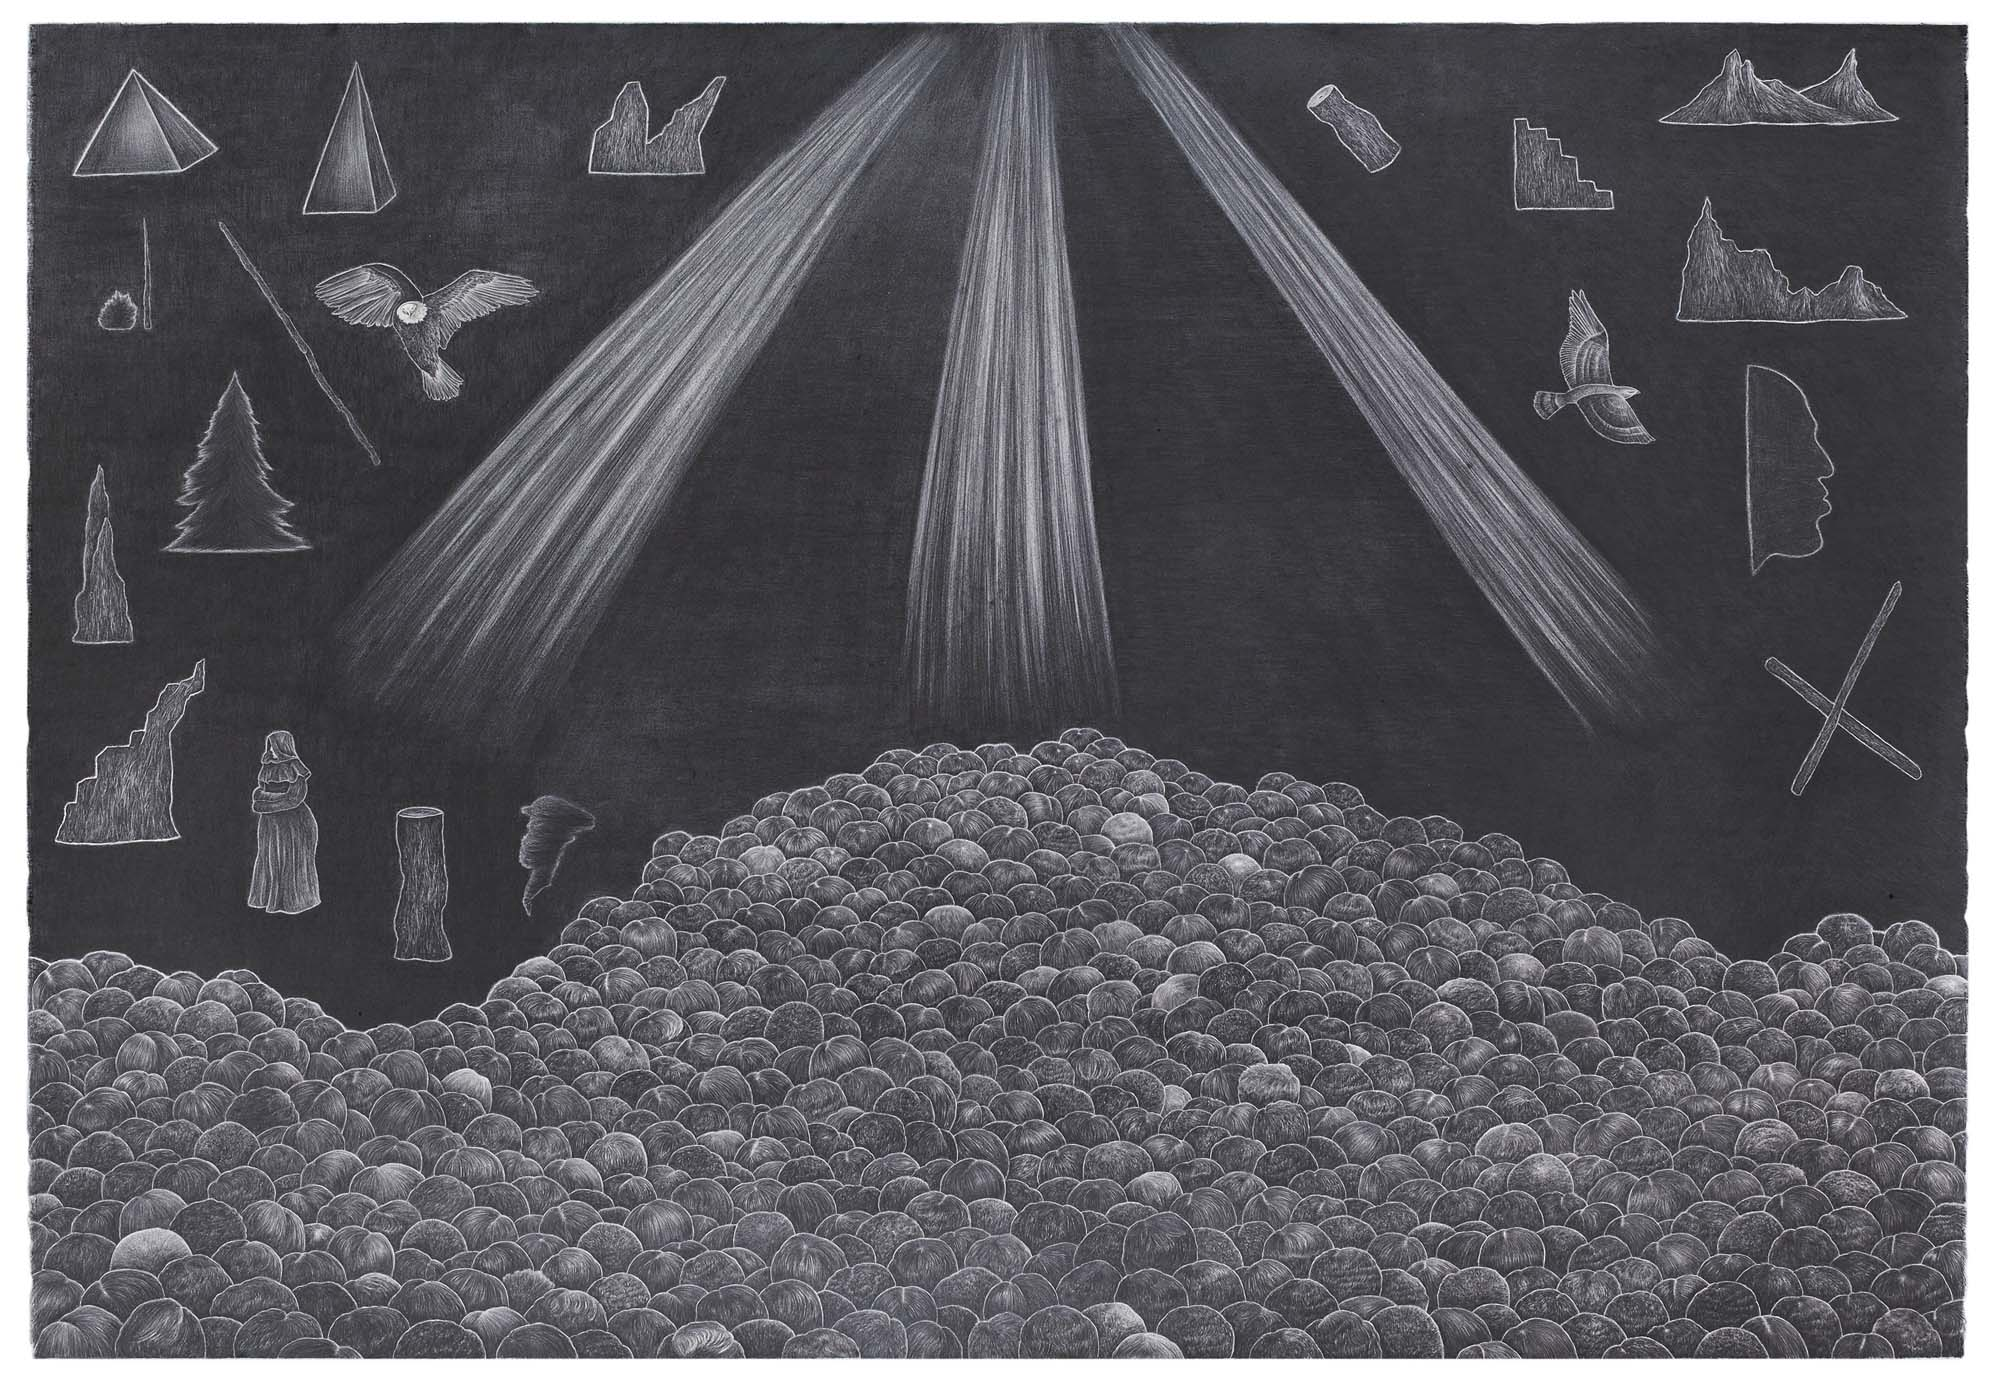 Ultralight Beam Terzetto 2016, Graphite on paper, 41 ½ x 63 inches